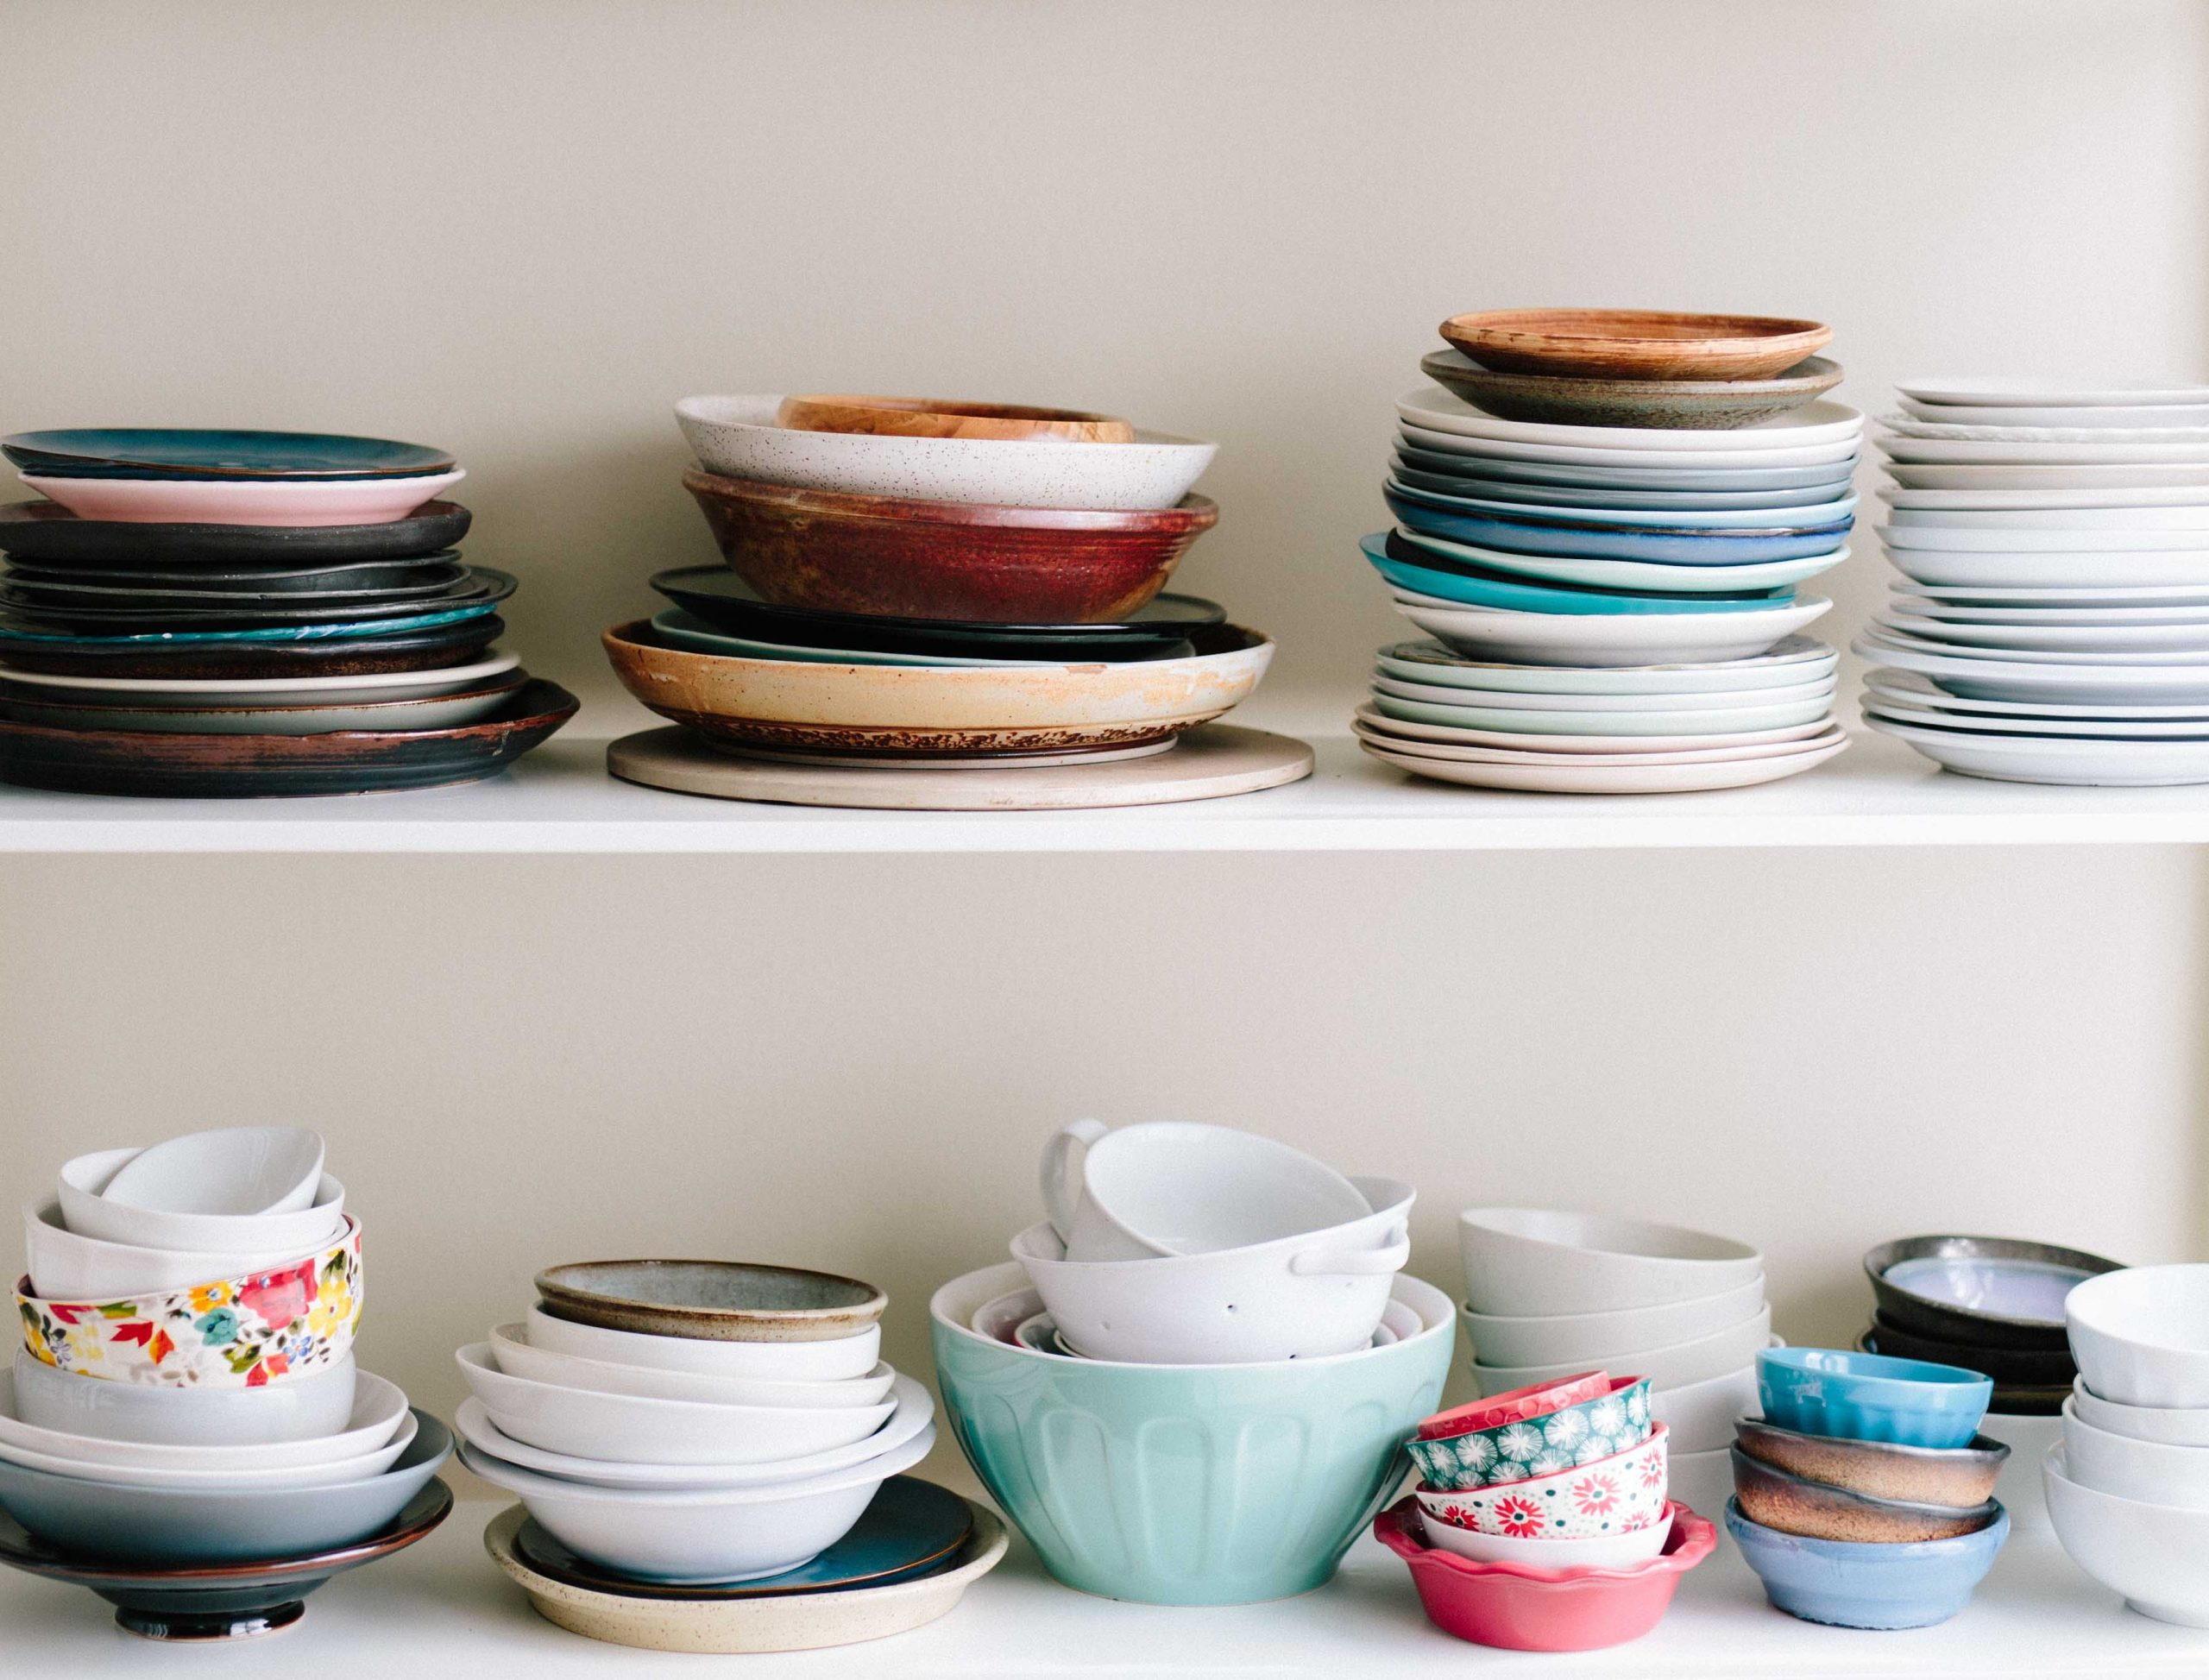 Picture of mismatched plates. Keeping dishes and plates organizedhow to clean a kitchen